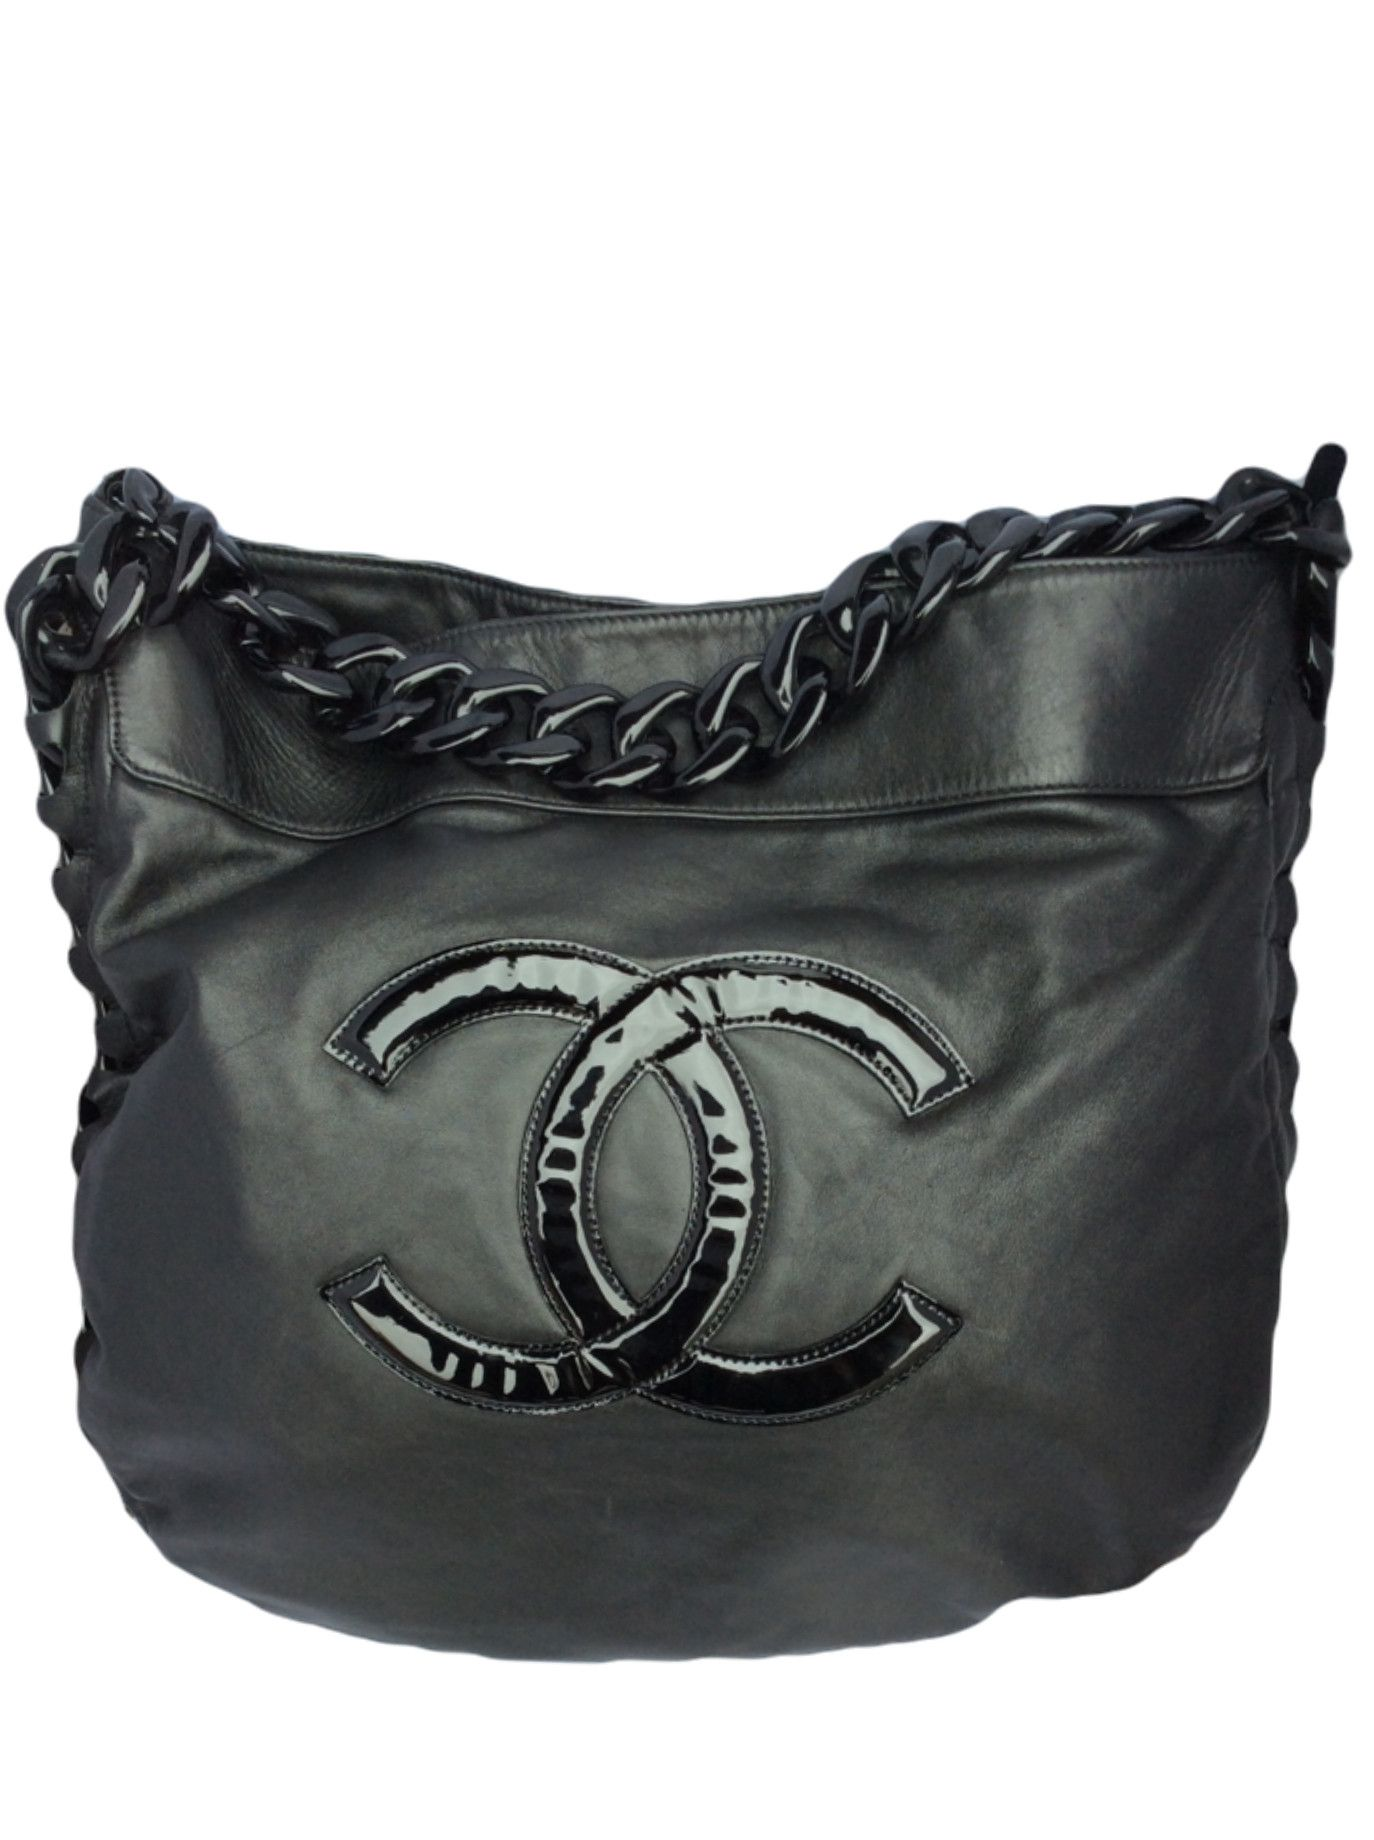 72158548b Chanel jumbo black hobo bag with plastic chain handle – Timpanys Dress  Agency